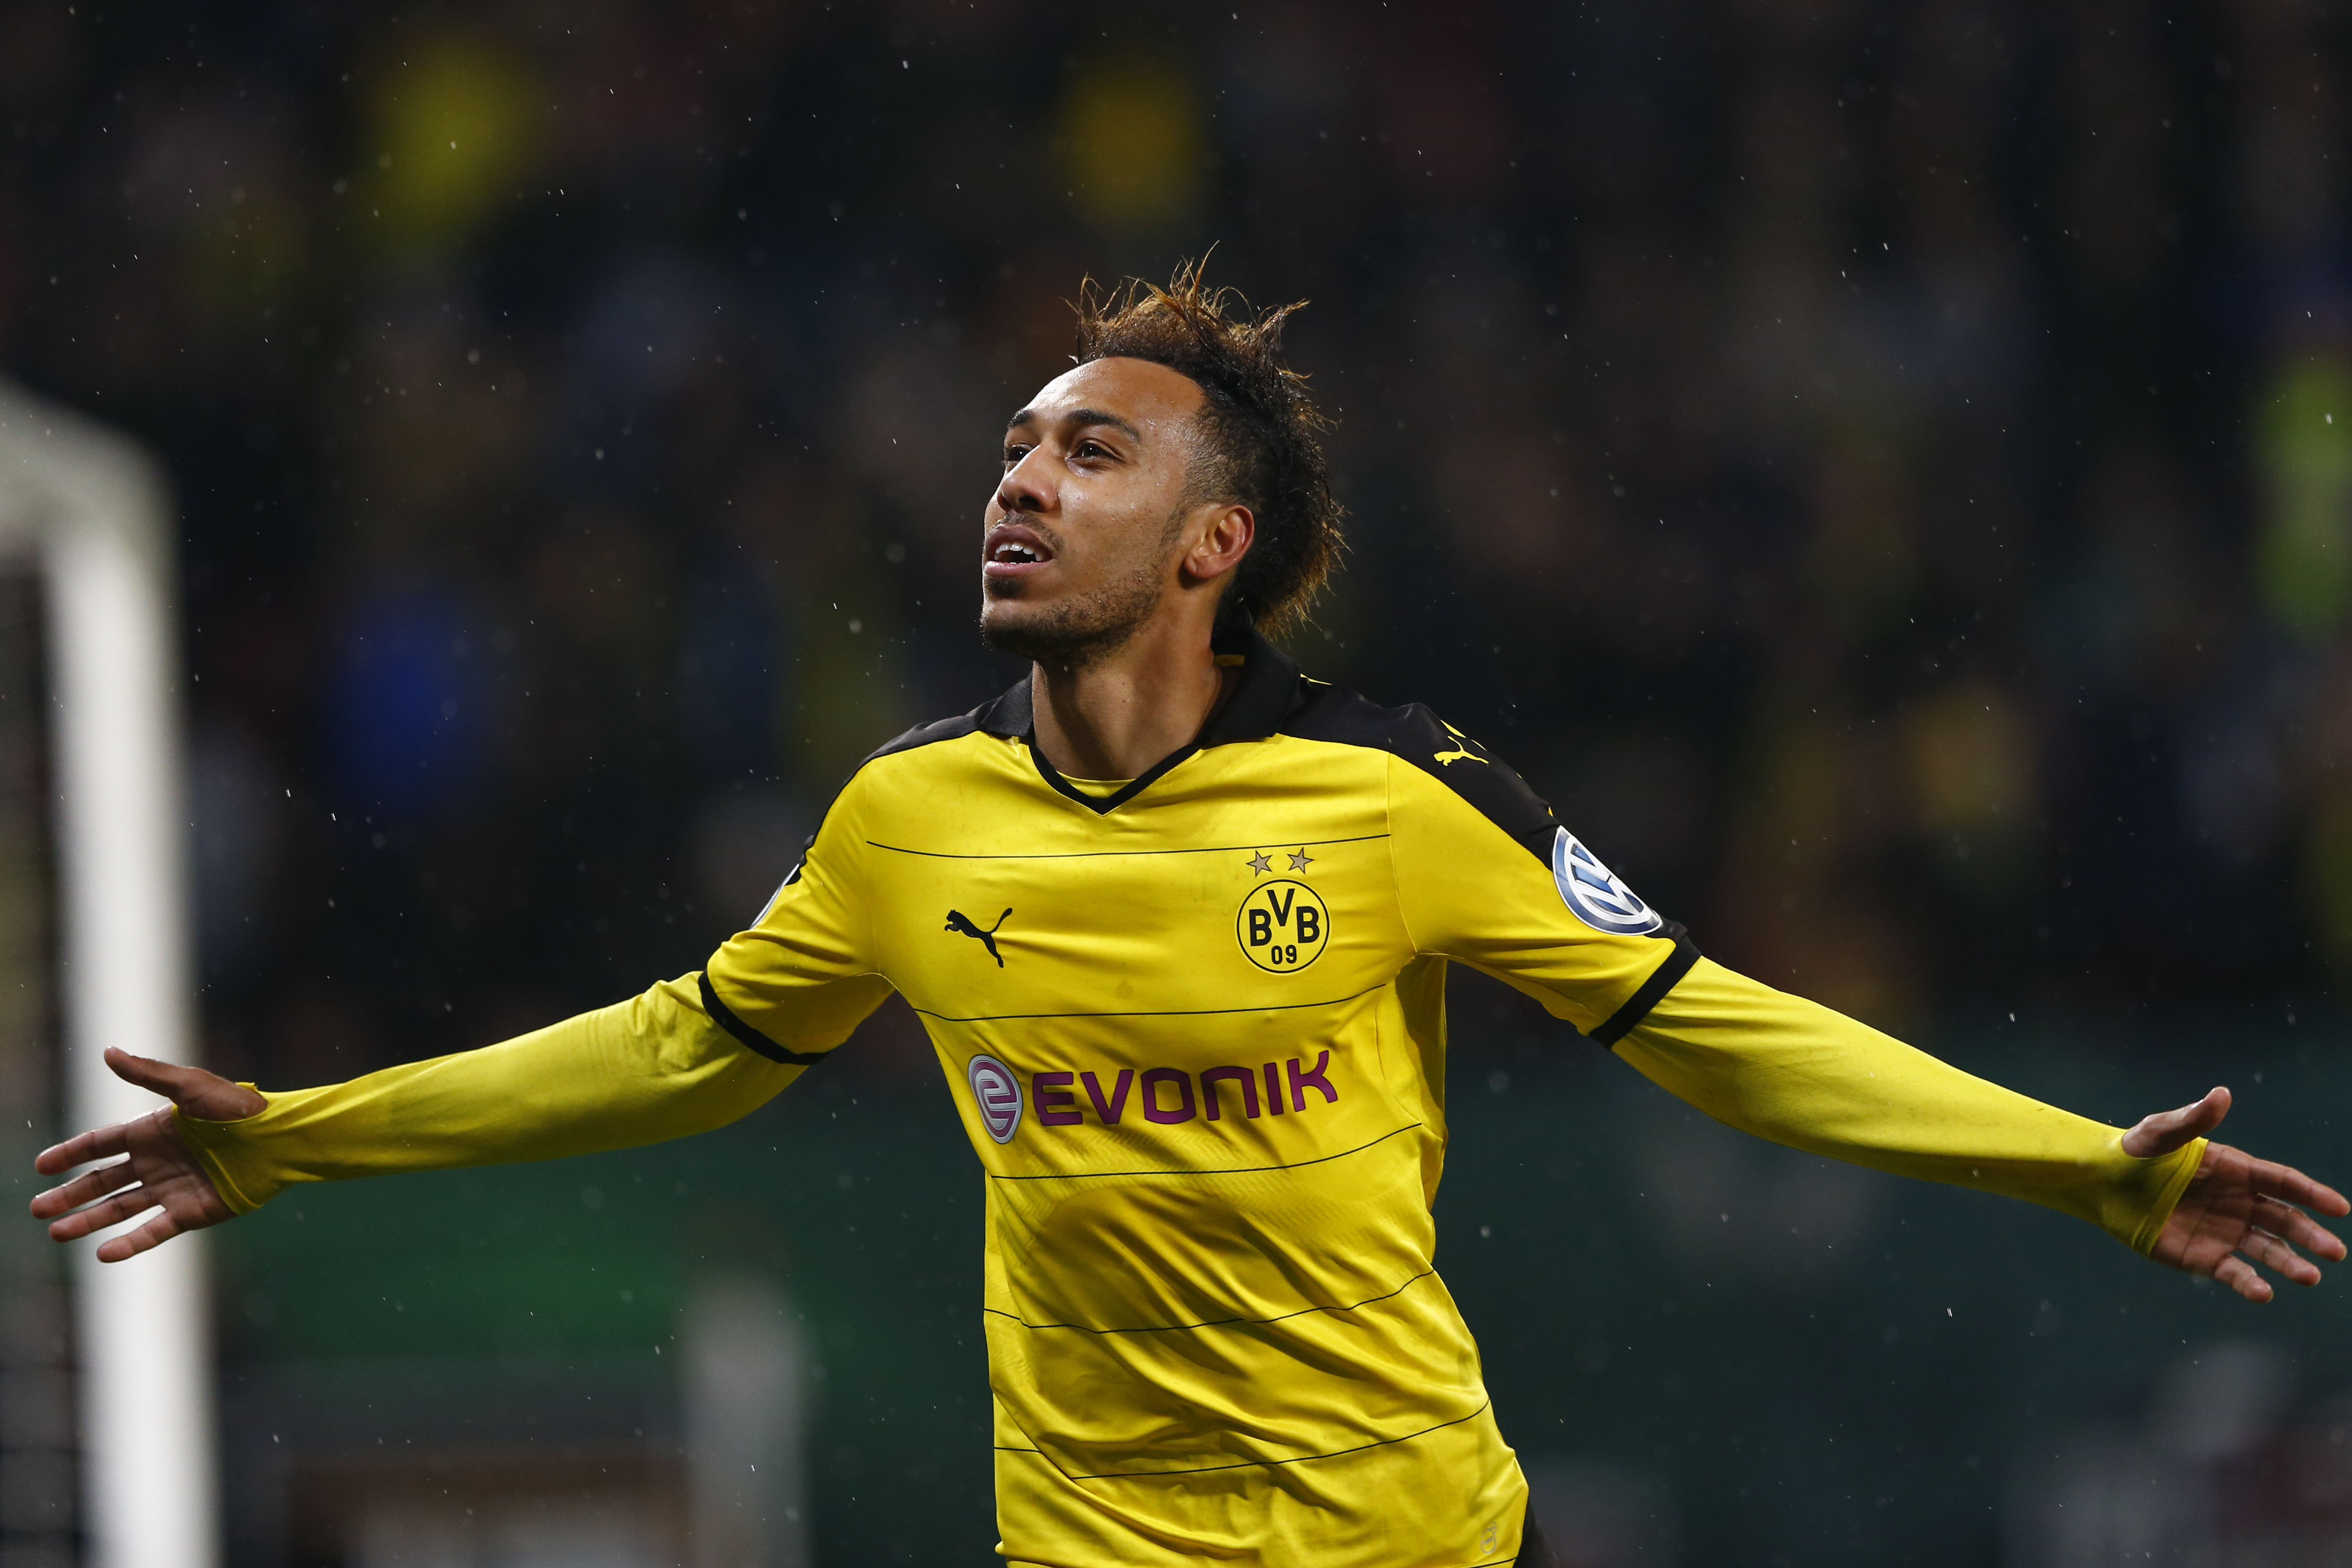 WATCH Pierre Emerick Aubameyang Scores Team Goal Against AC Milan